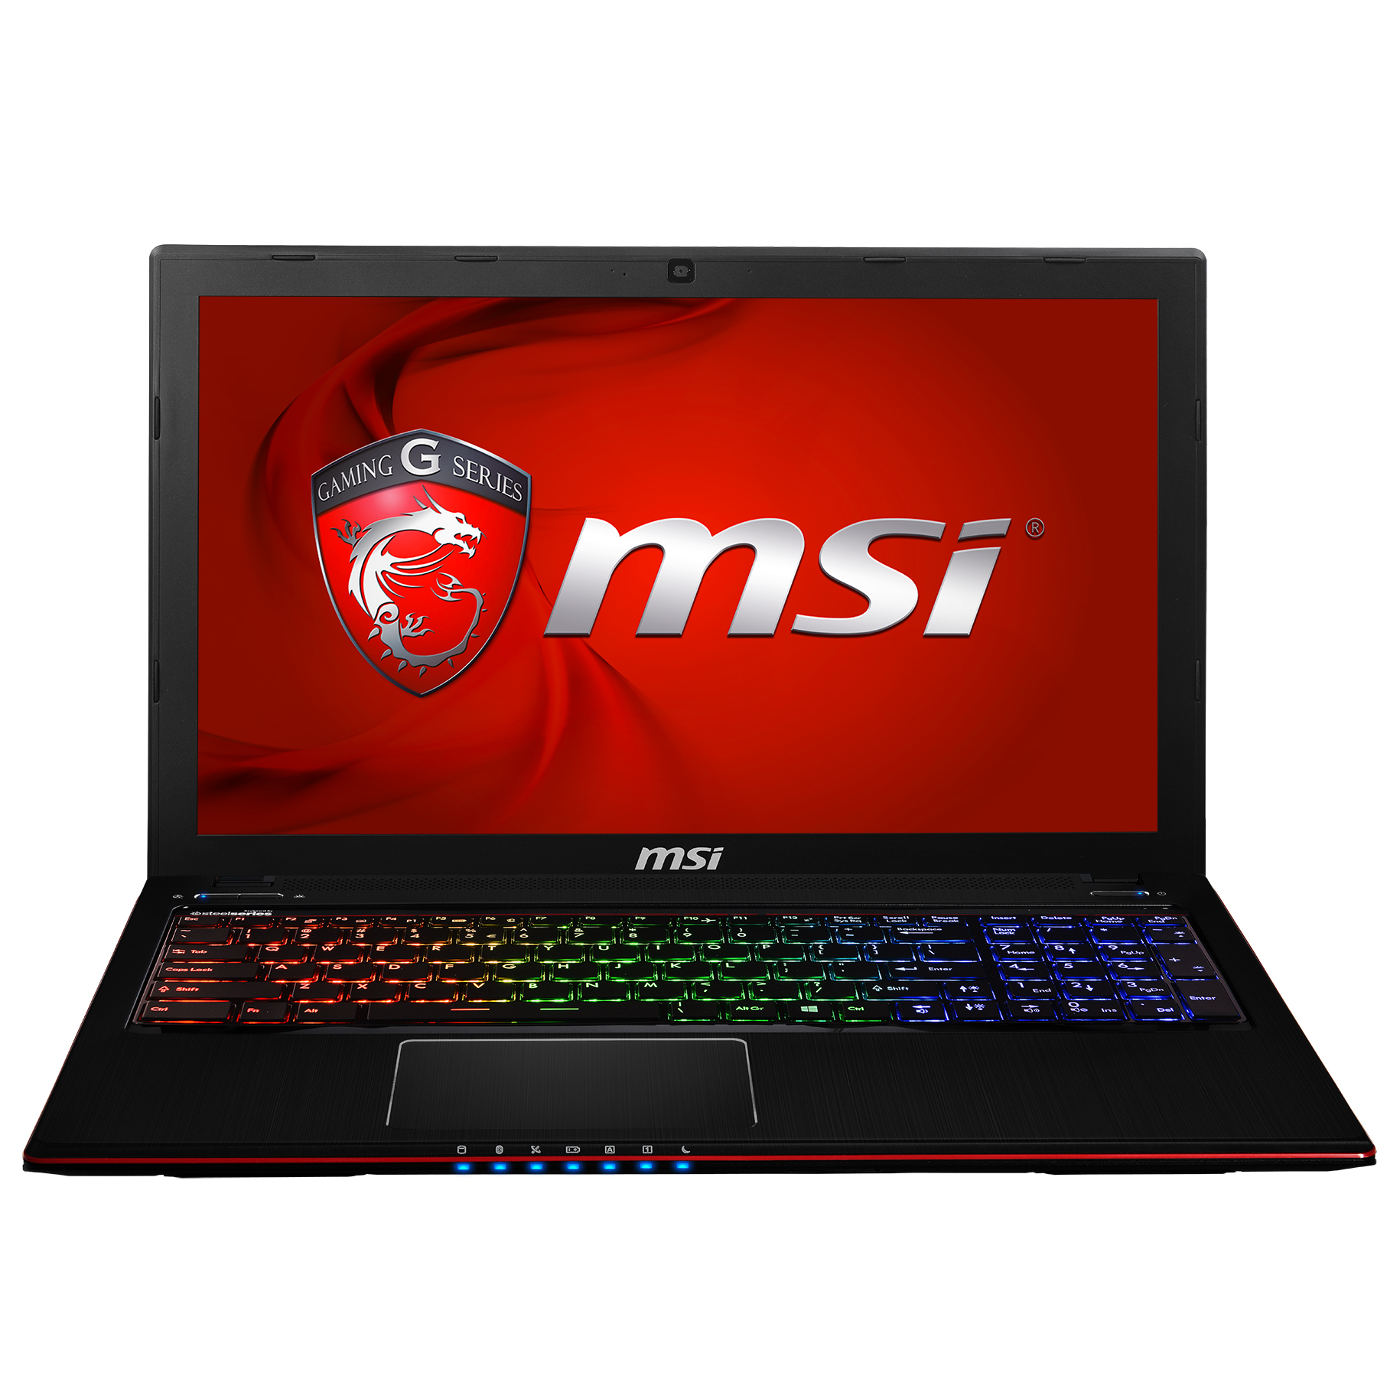 "PC portable MSI GE60 2PE-005FR Apache Pro Intel Core i7-4700HQ 8 Go 1 To 15.6"" LED NVIDIA GeForce GTX 860M Graveur DVD Wi-Fi AC/Bluetooth Webcam Windows 8.1 64 bits (garantie constructeur 1 an)"